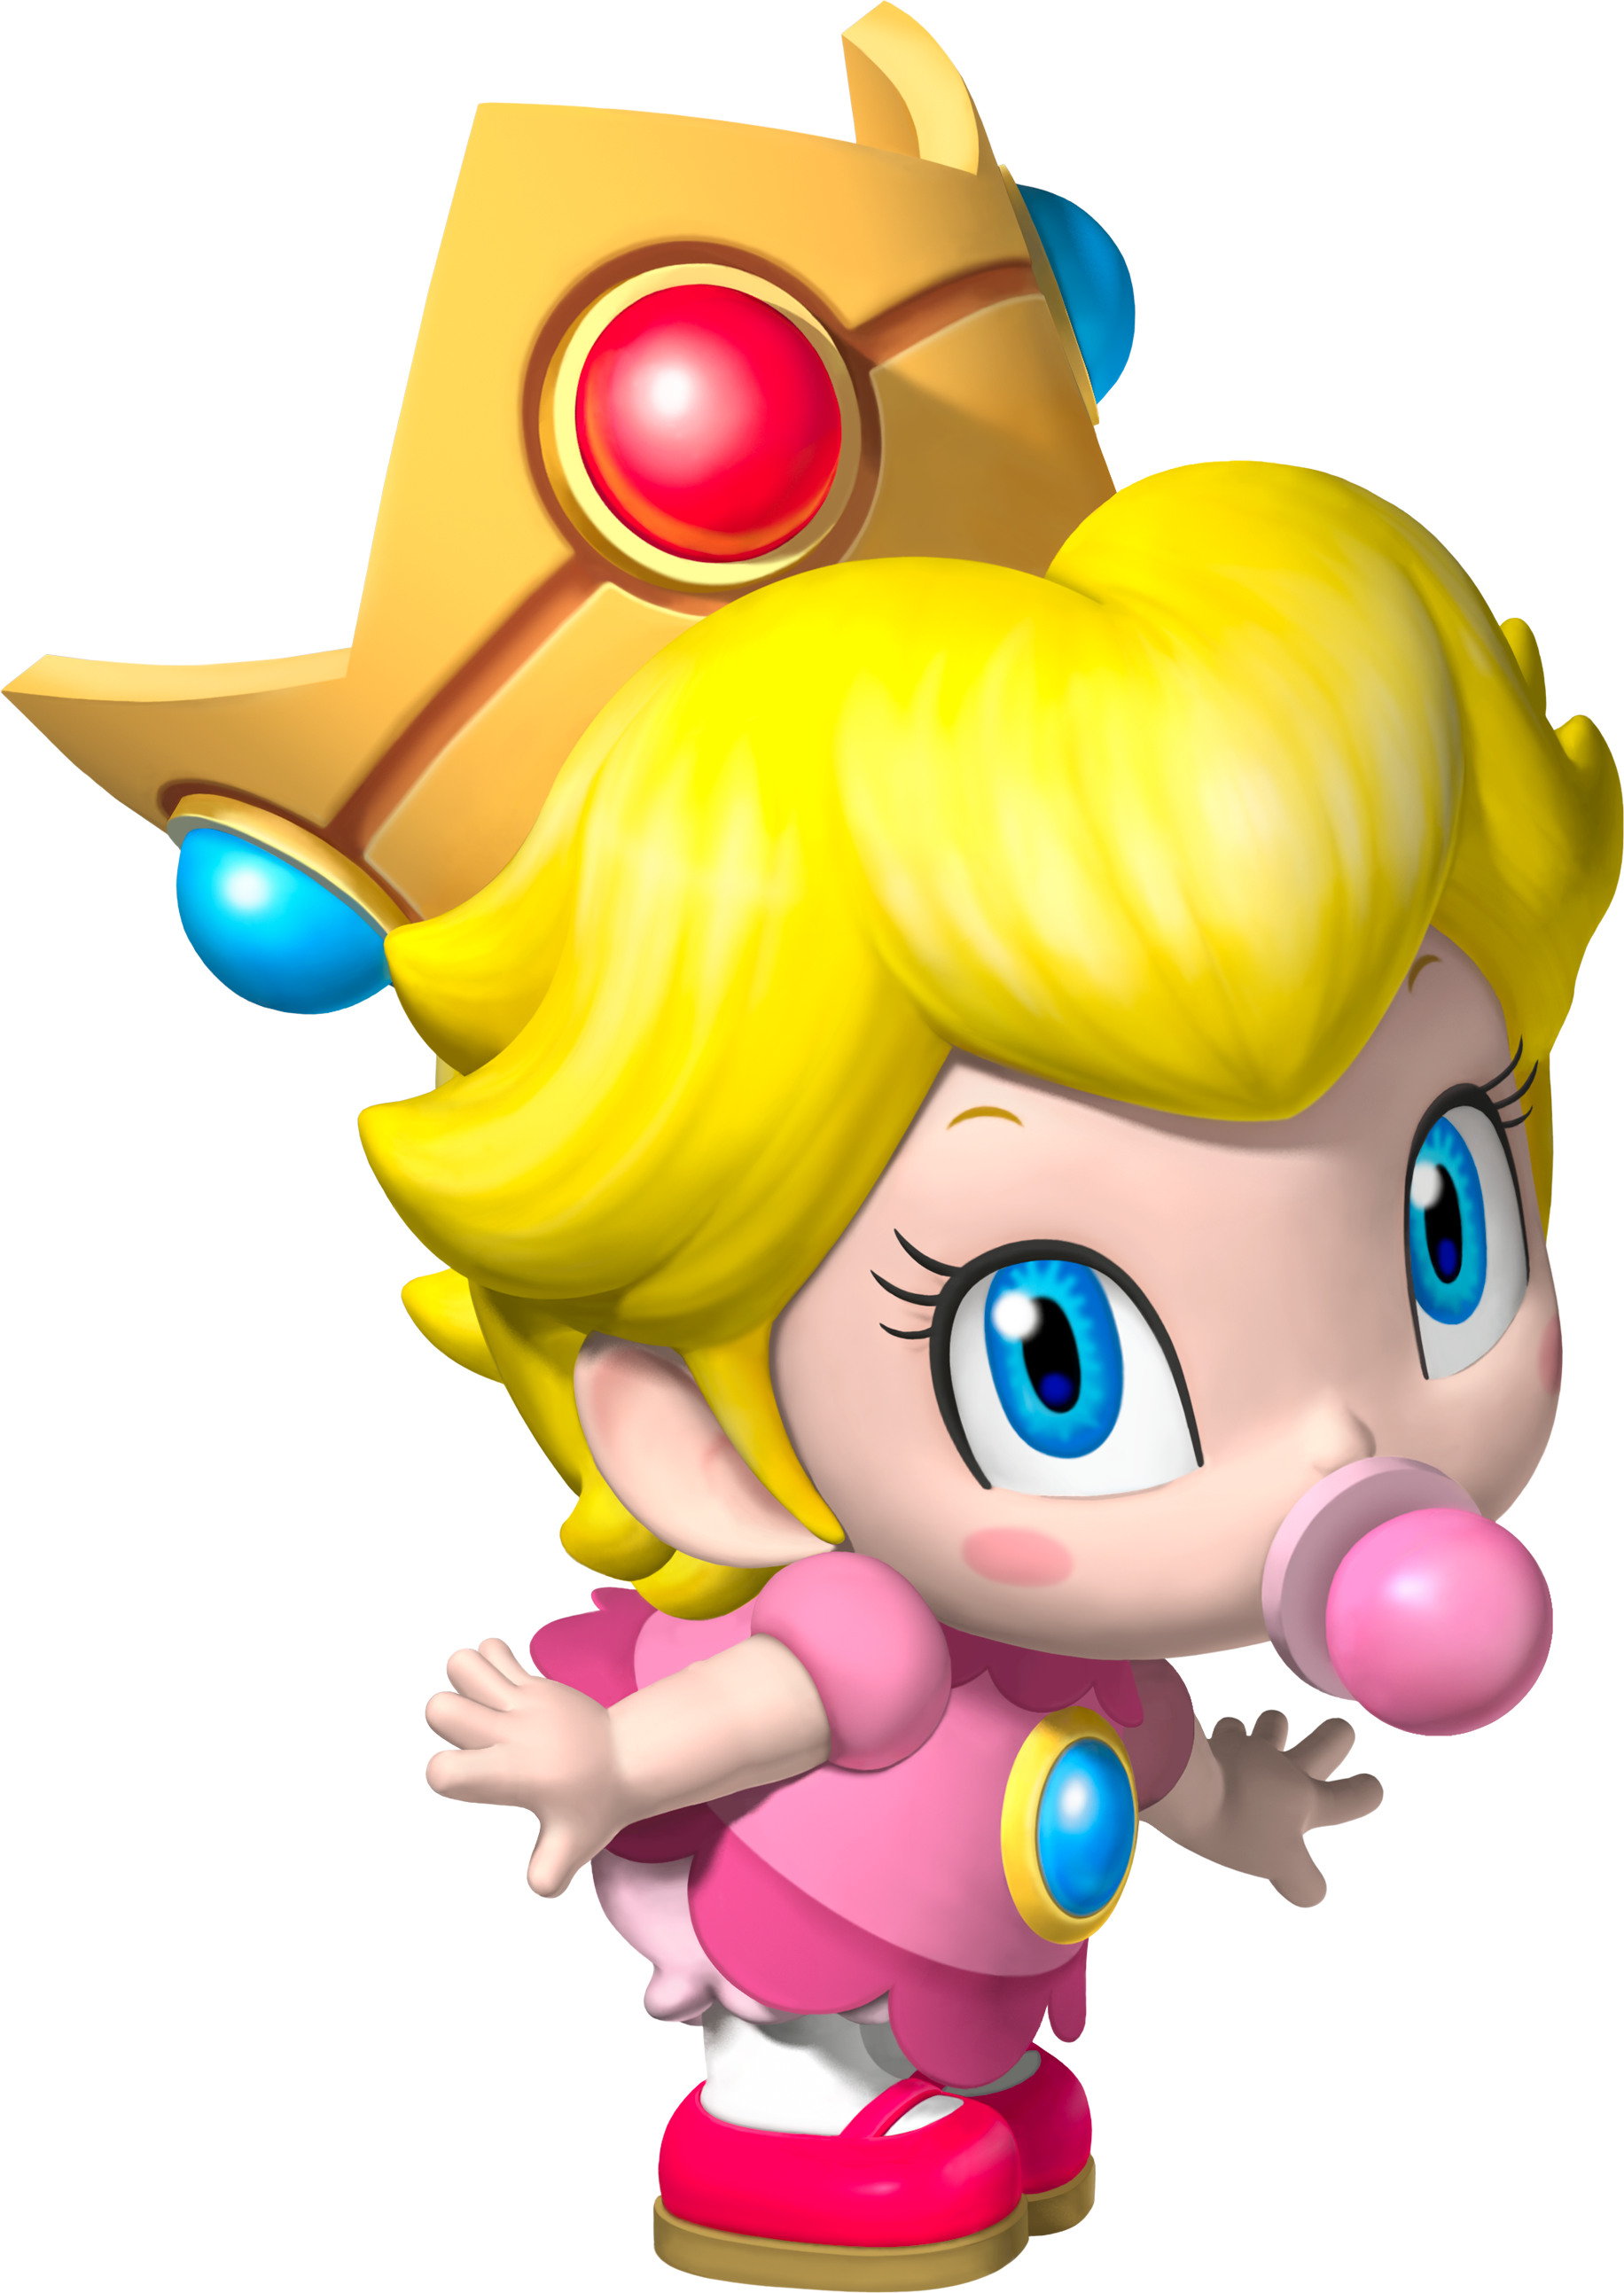 File:Babypeachsimple.png